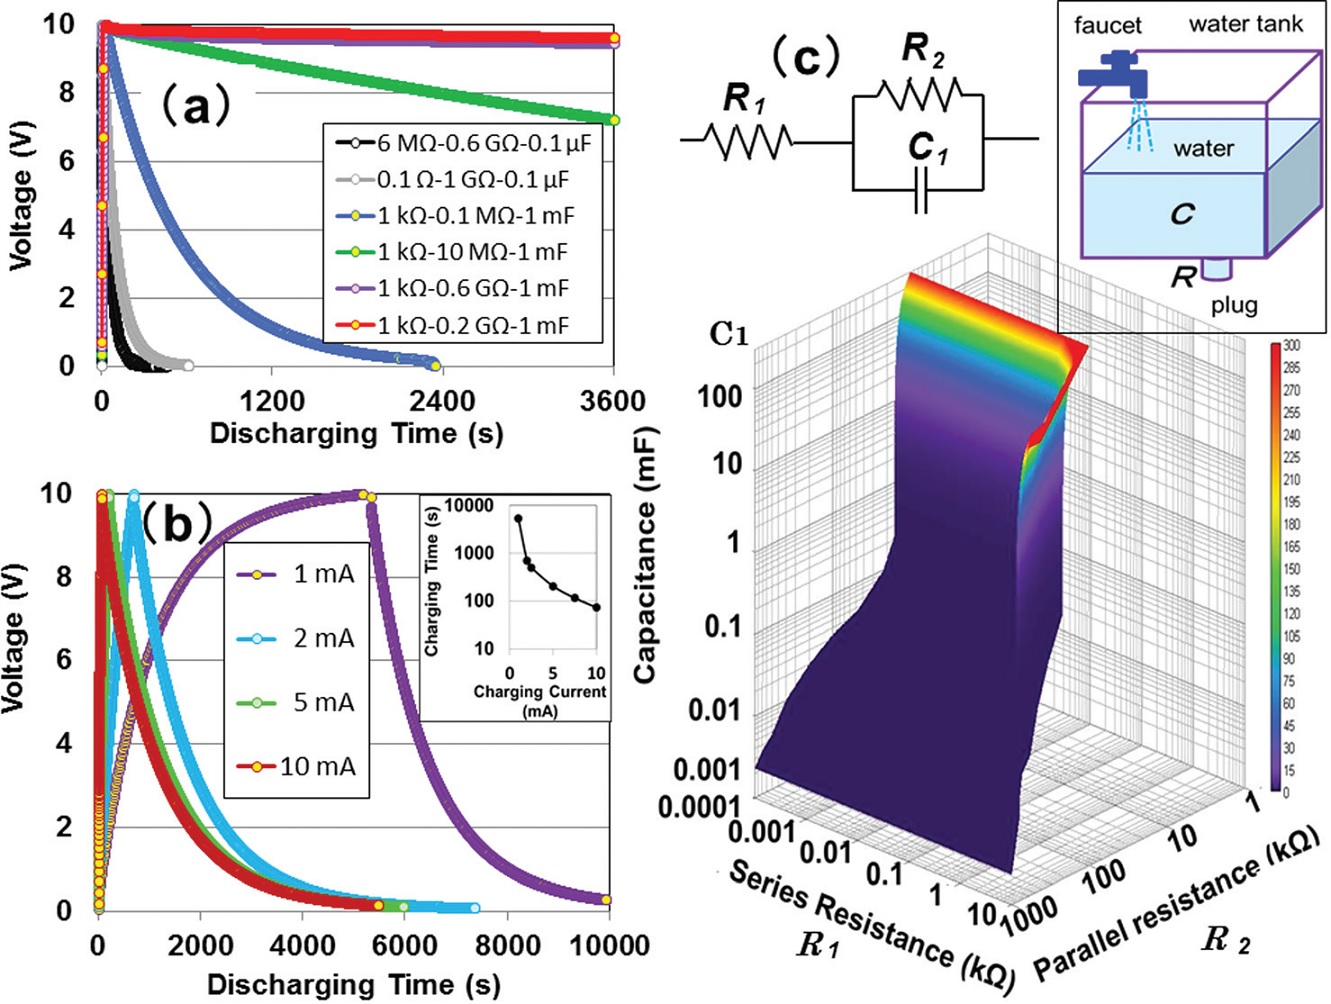 can capacitors in electrical circuits provide large scale energy  (c) three dimensional funnel shaped surface contour displaying energy rich discharging after complete charging credit fukuhara, et al